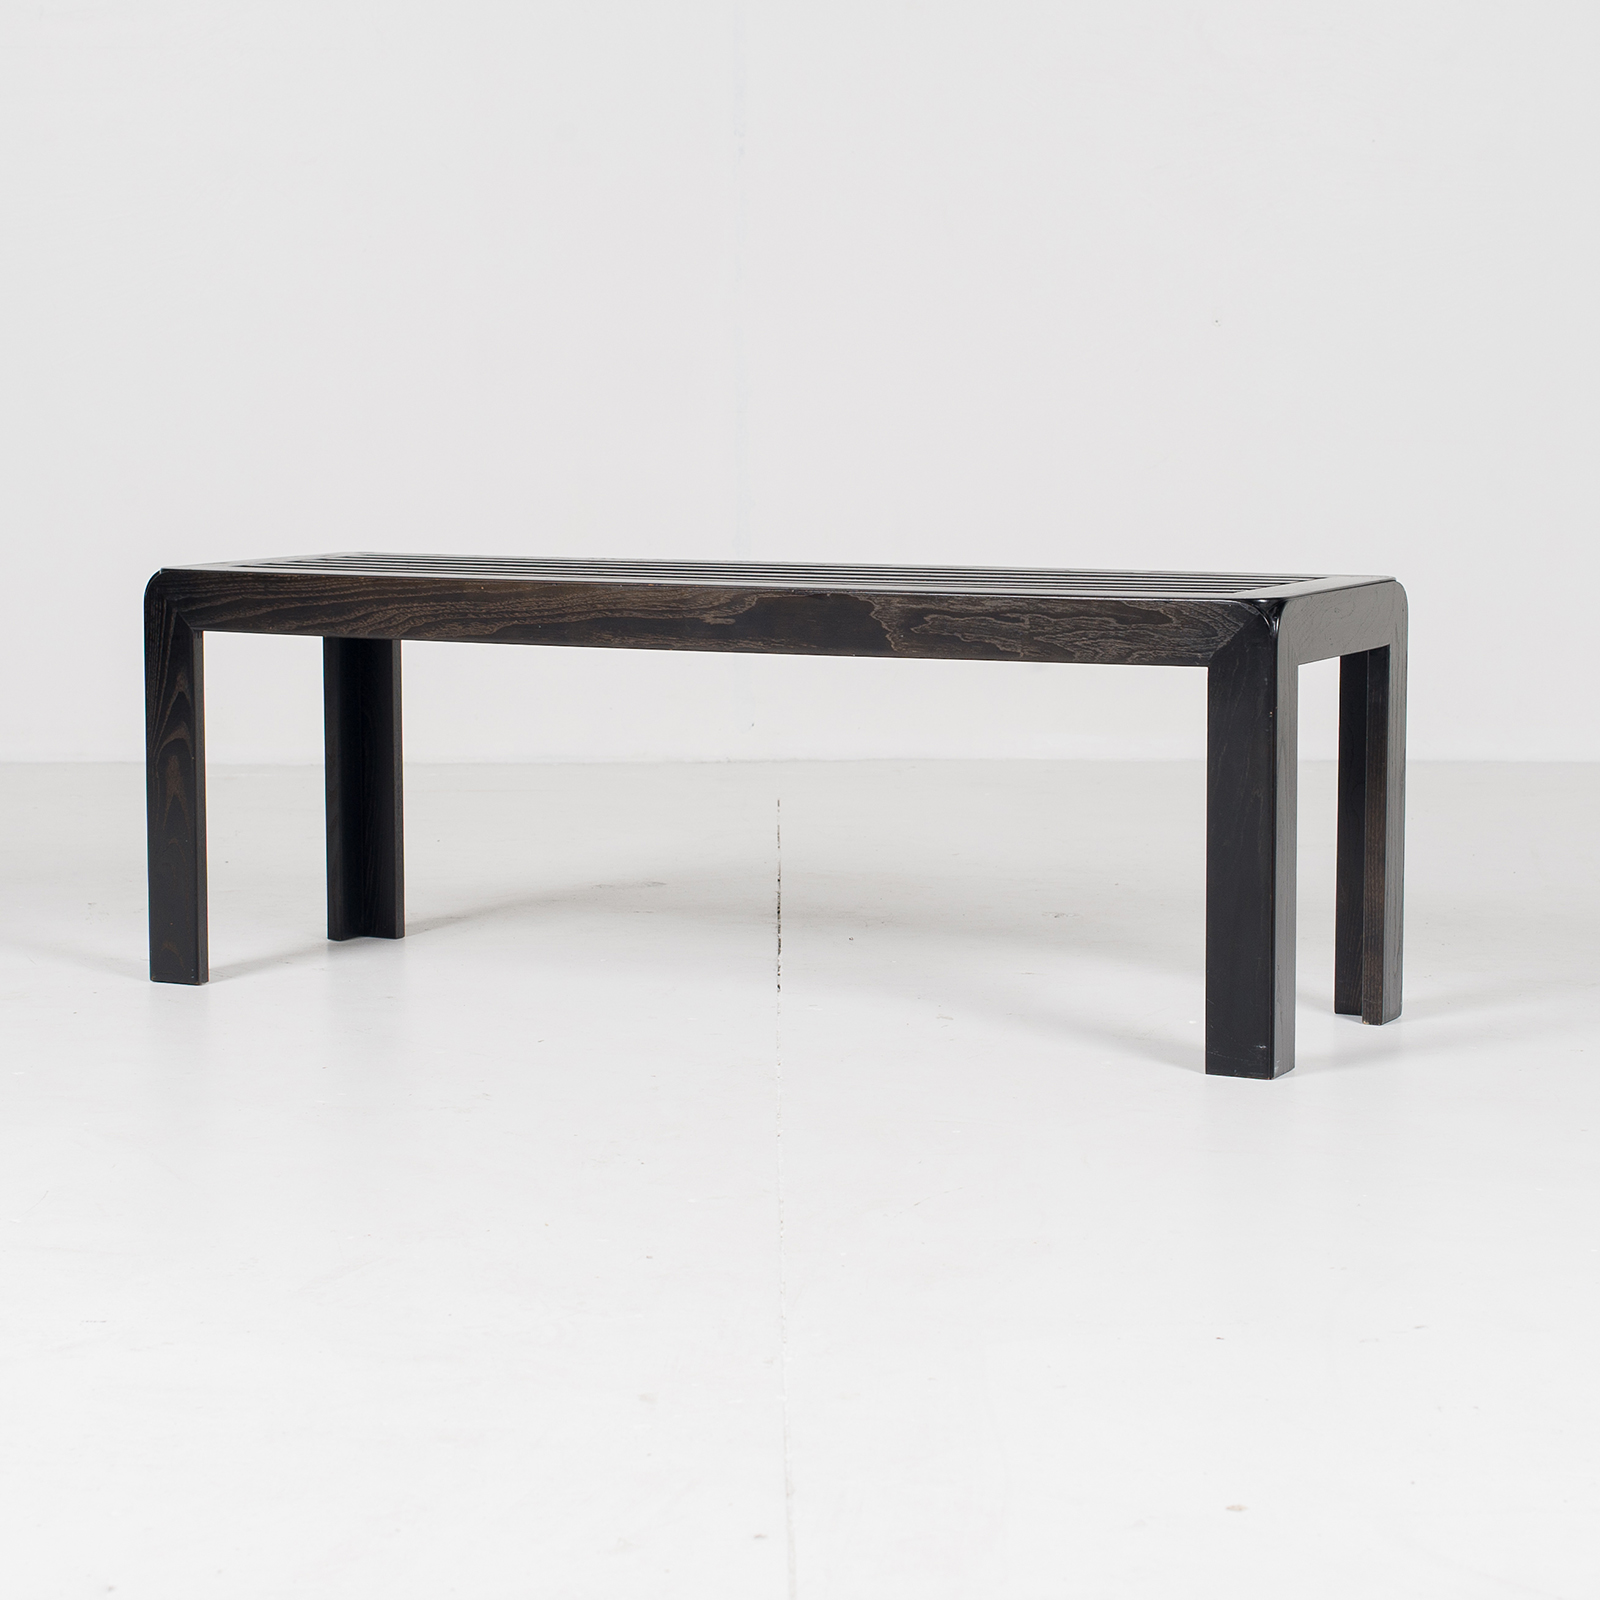 Bench In Black Timber, 1960s, The Netherlands56